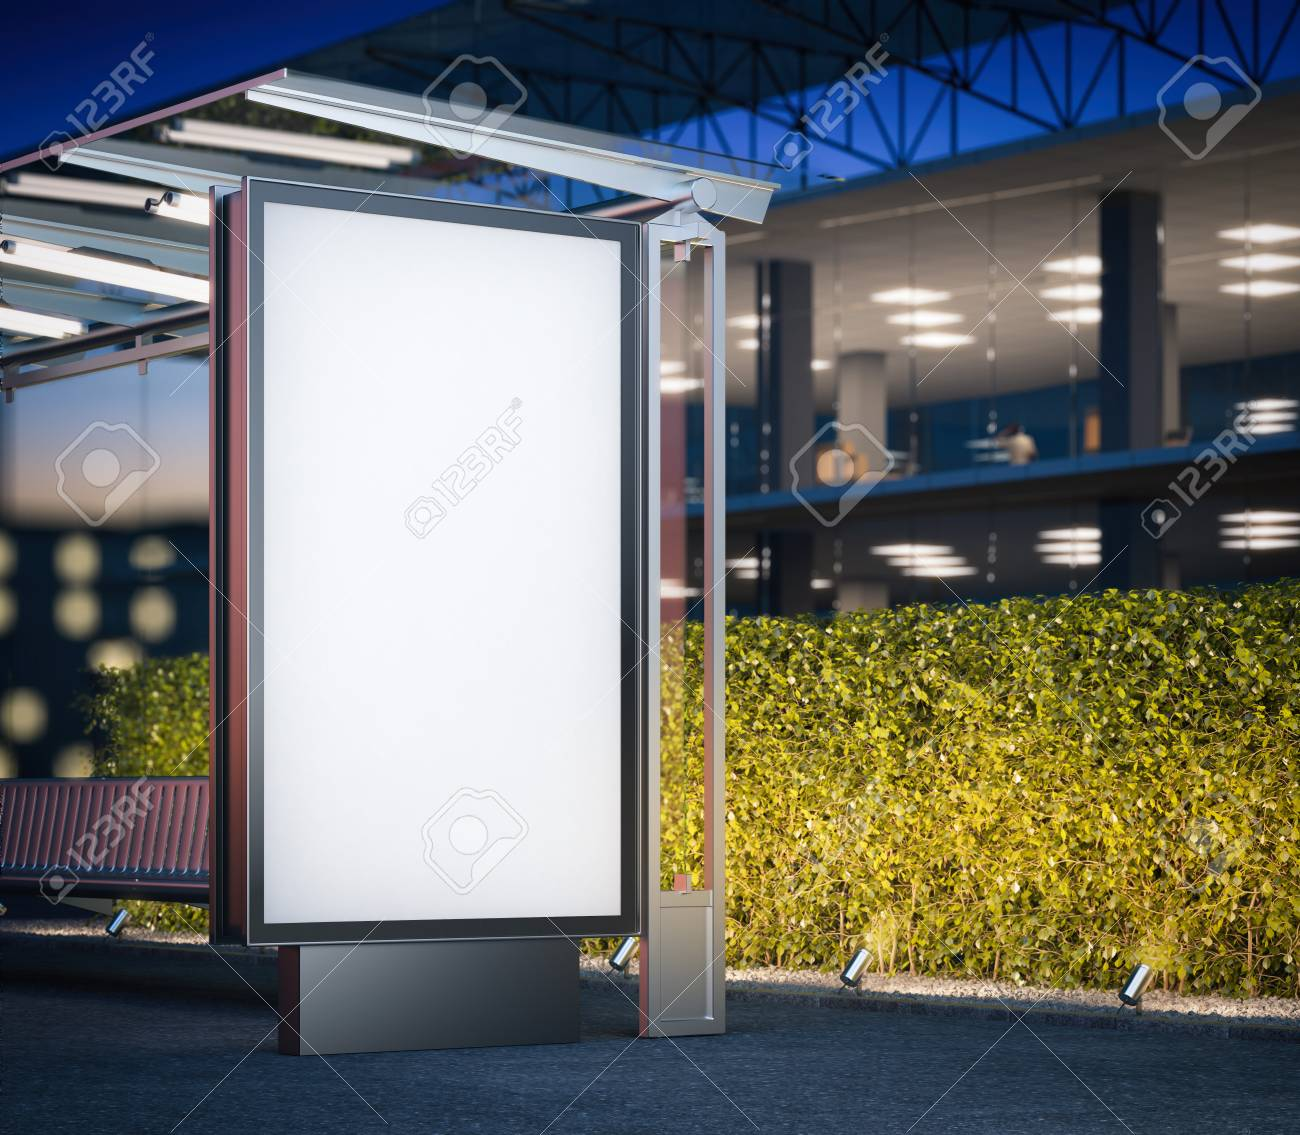 Modern bus stop with blank billboard near office building at night. 3d rendering - 62488660